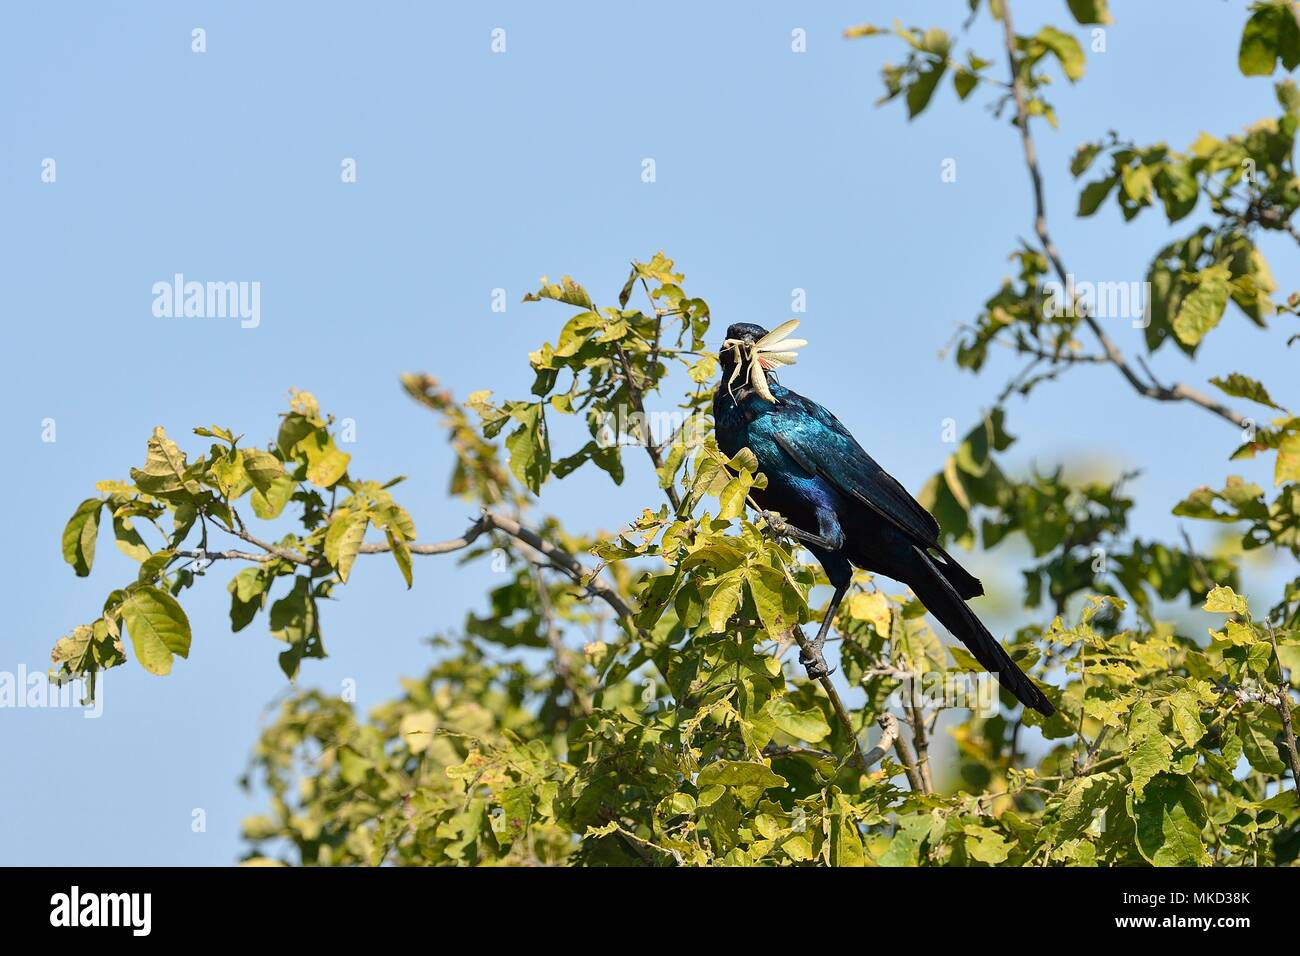 Burchell's Starling (Lamprotornis australis) on a branch with insect in beak, Botswana - Stock Image